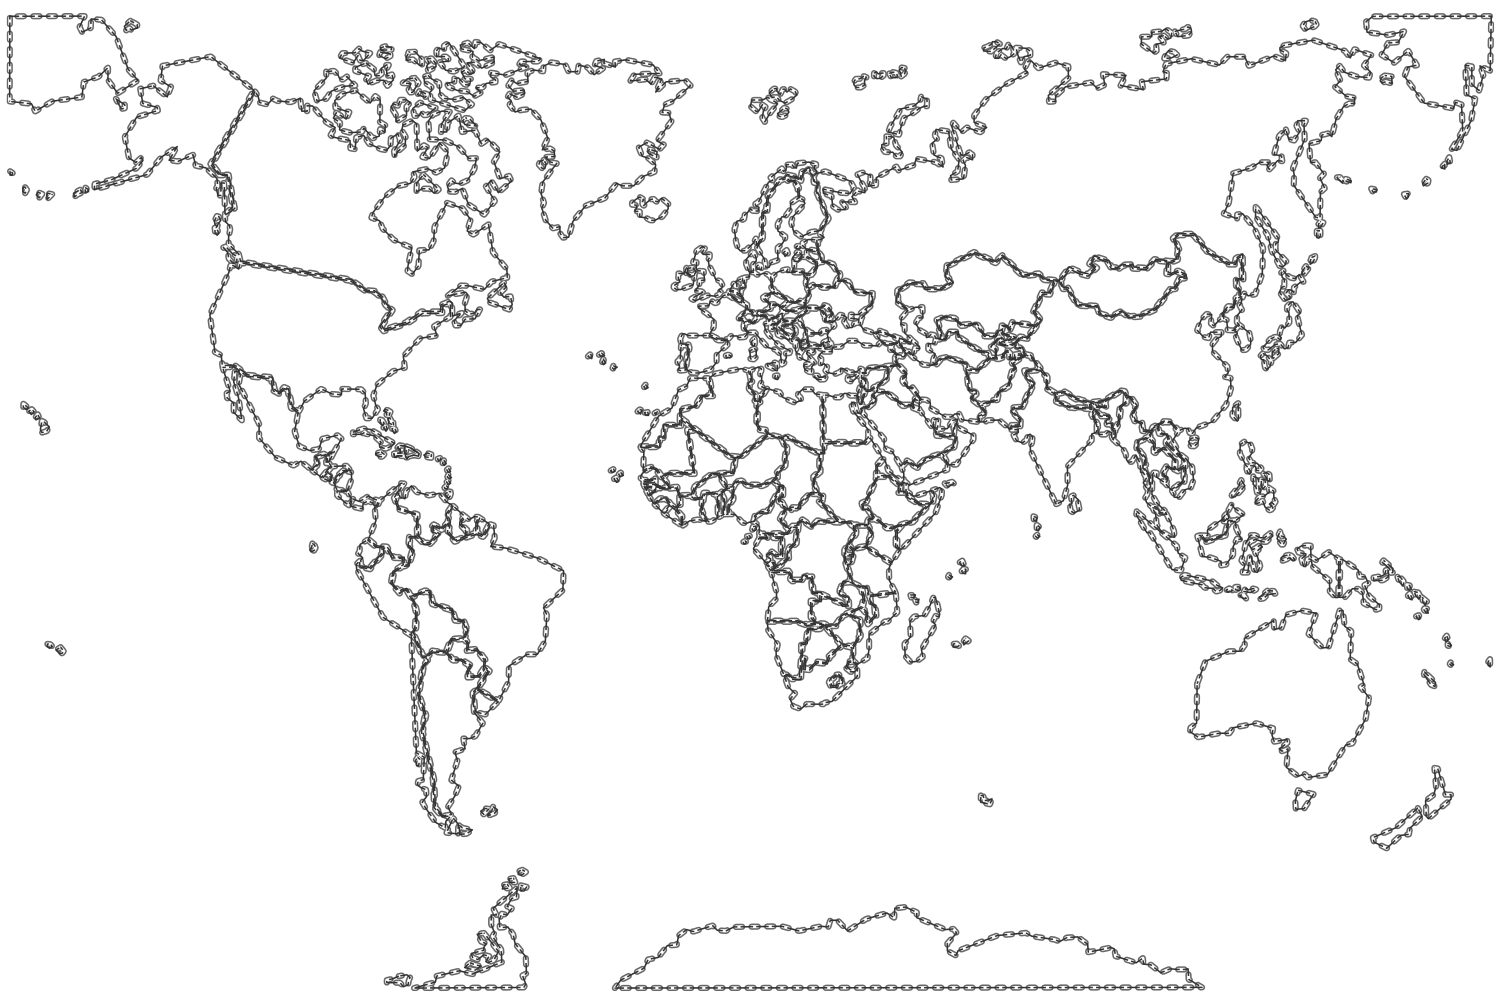 Map Of The World With Countries Coloring Page High Quality - World map no labels